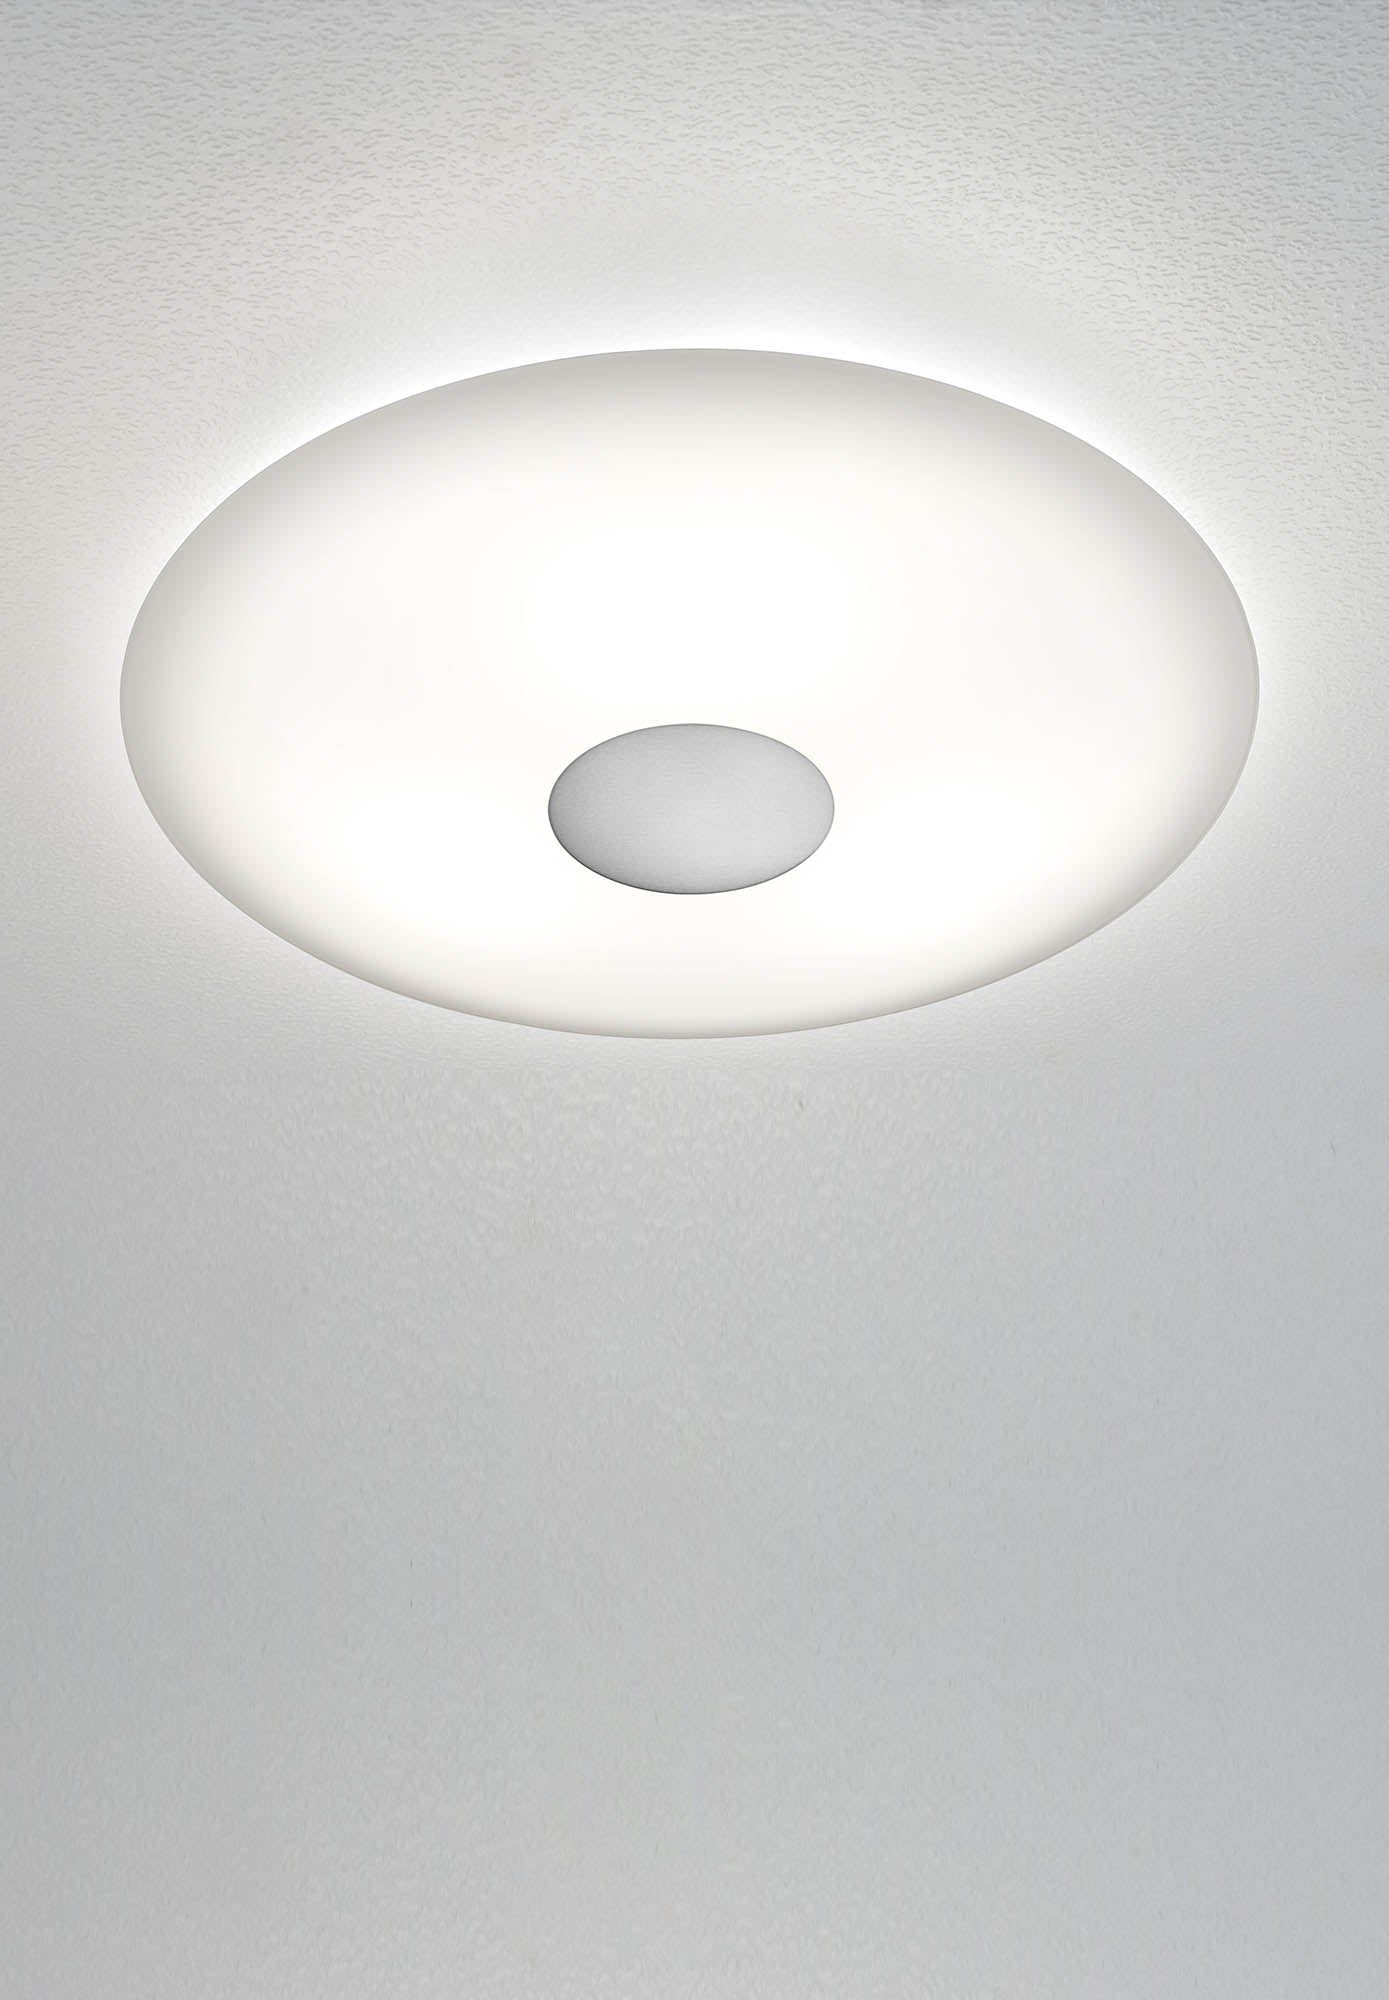 Series Flush Mount Fixtures Have A Very Low Profile While